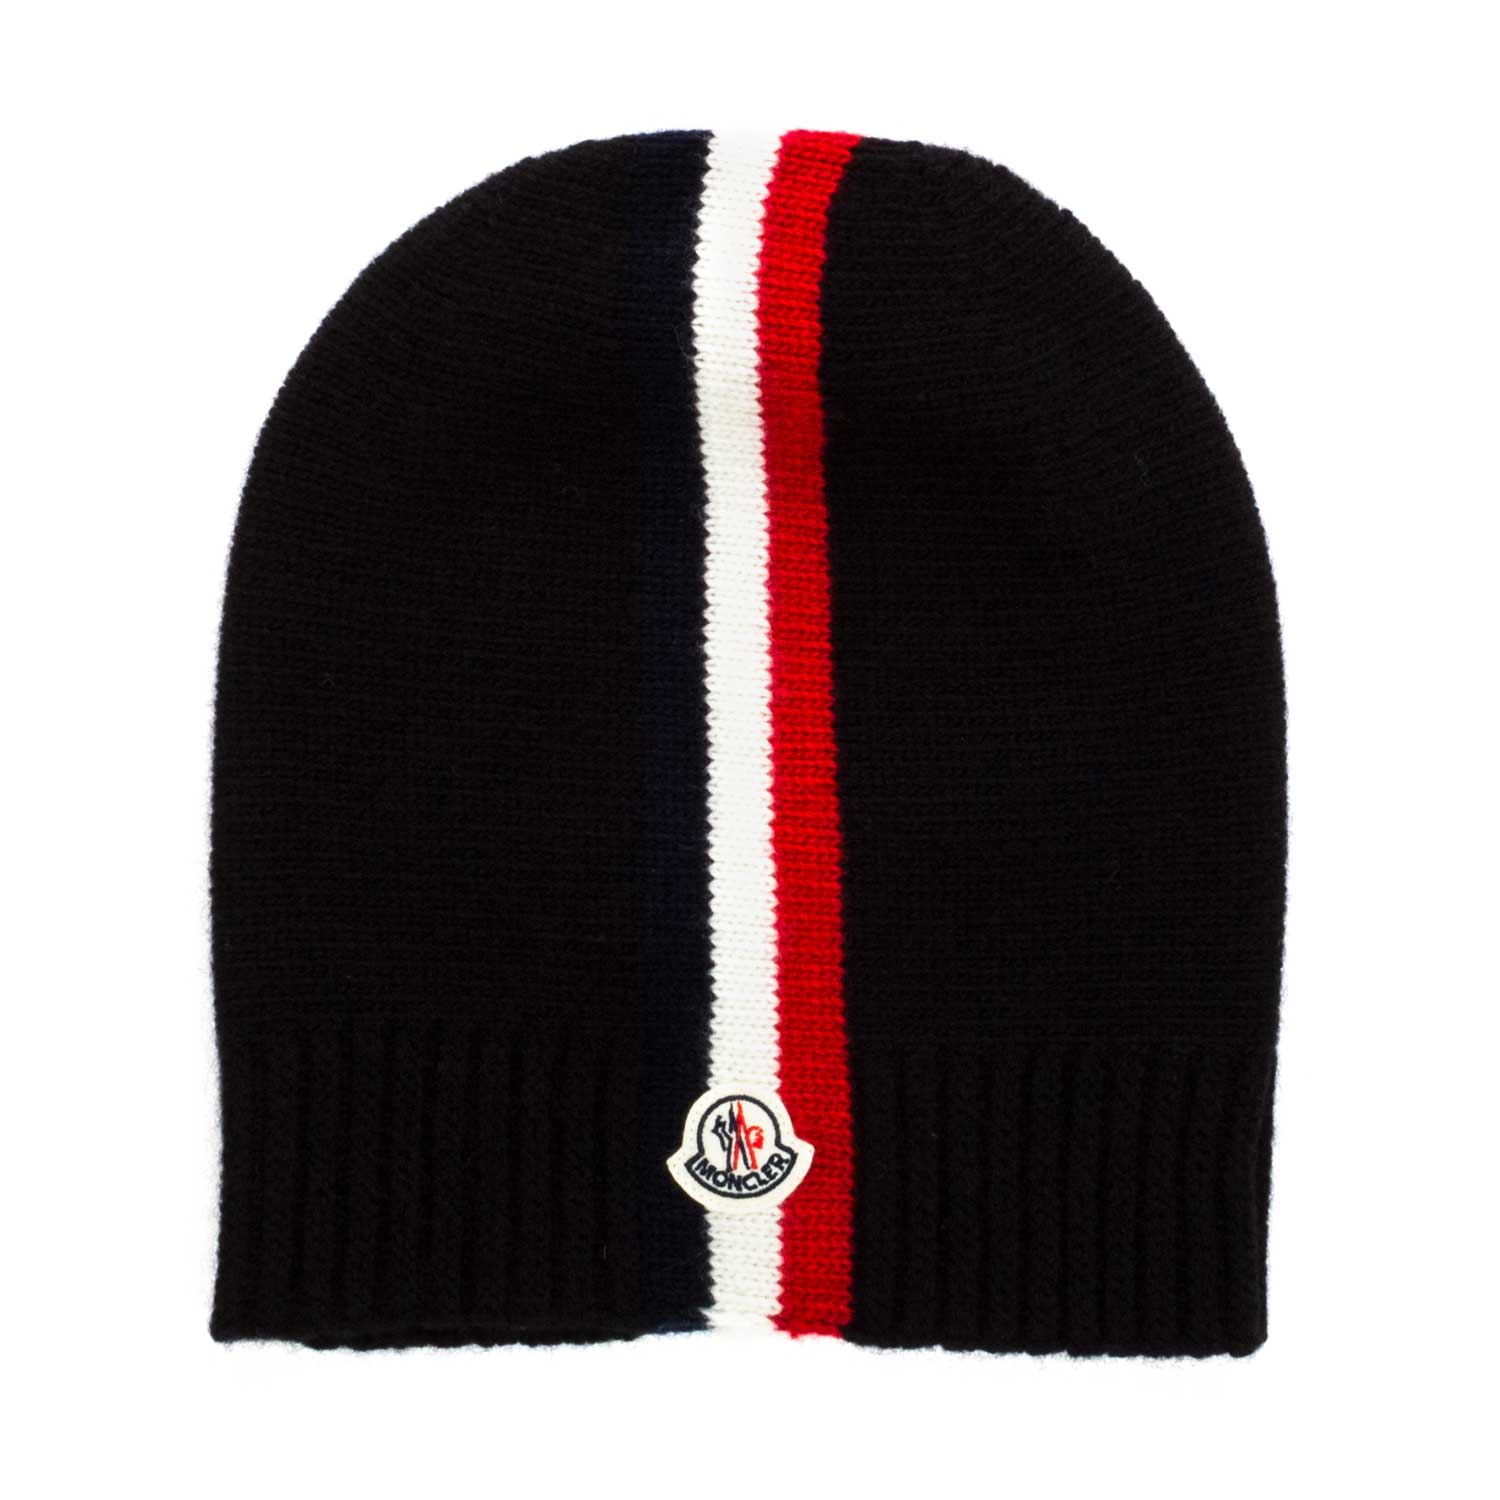 c6ec4087973 Home · MONCLER · Accessories hats headbands  Black Wool Hat For Boys.  26386-moncler cappello lana nero bambino-1.jpg